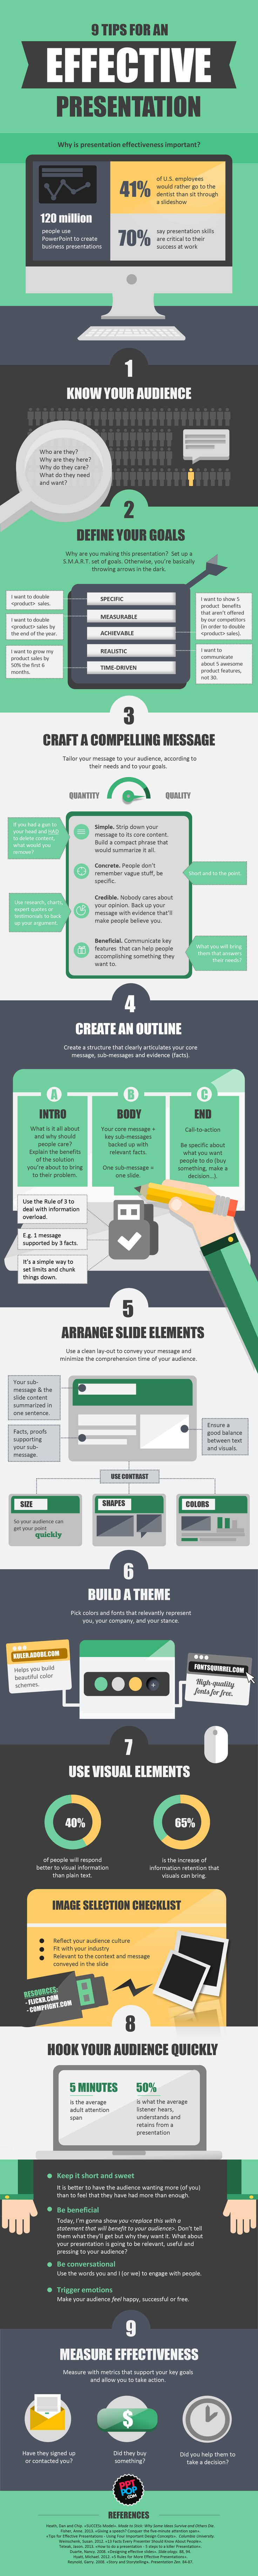 best ideas about s careers s motivation 9 tips for an effective presentation infographic